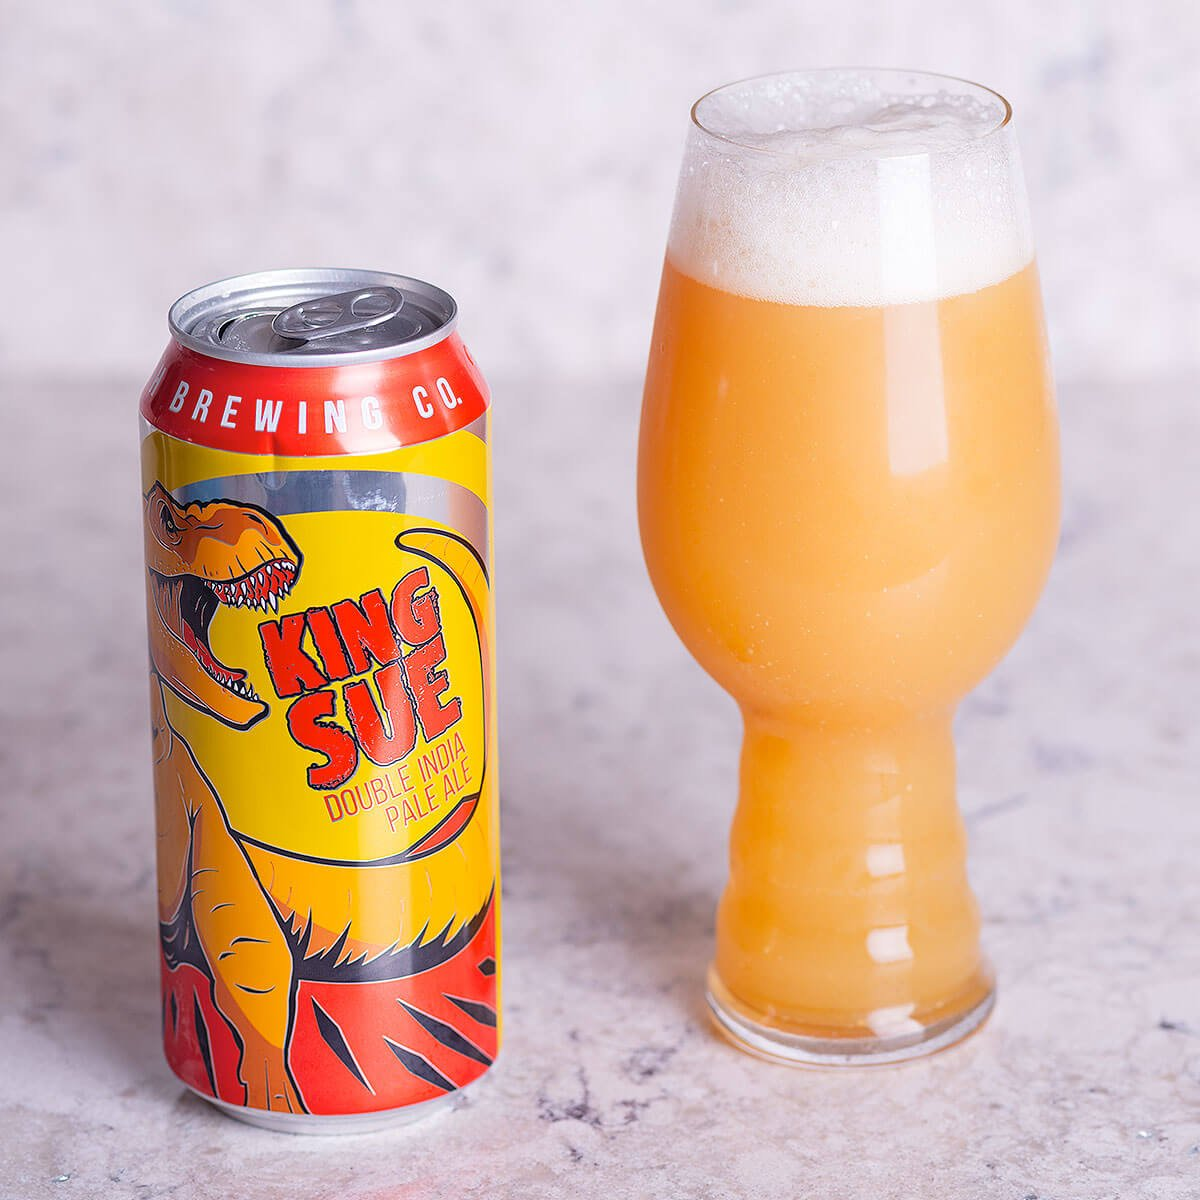 King Sue is a New England-style Double IPA by Toppling Goliath Brewing Co. that delivers a mighty bite of citrus and tropical fruit.